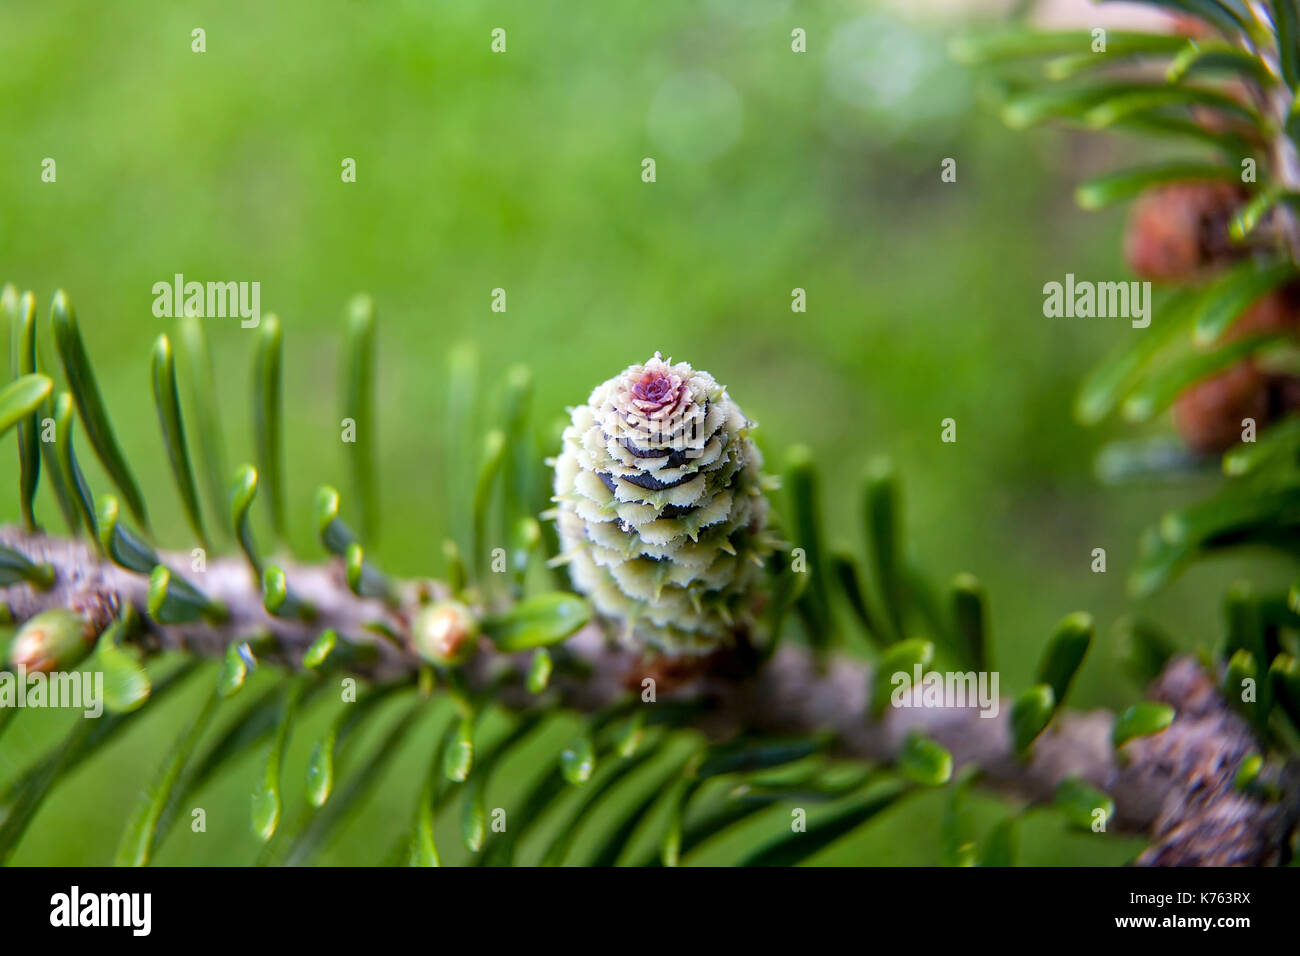 Rare conifers: Korean fir. Cones of the fir. Macro - Stock Image